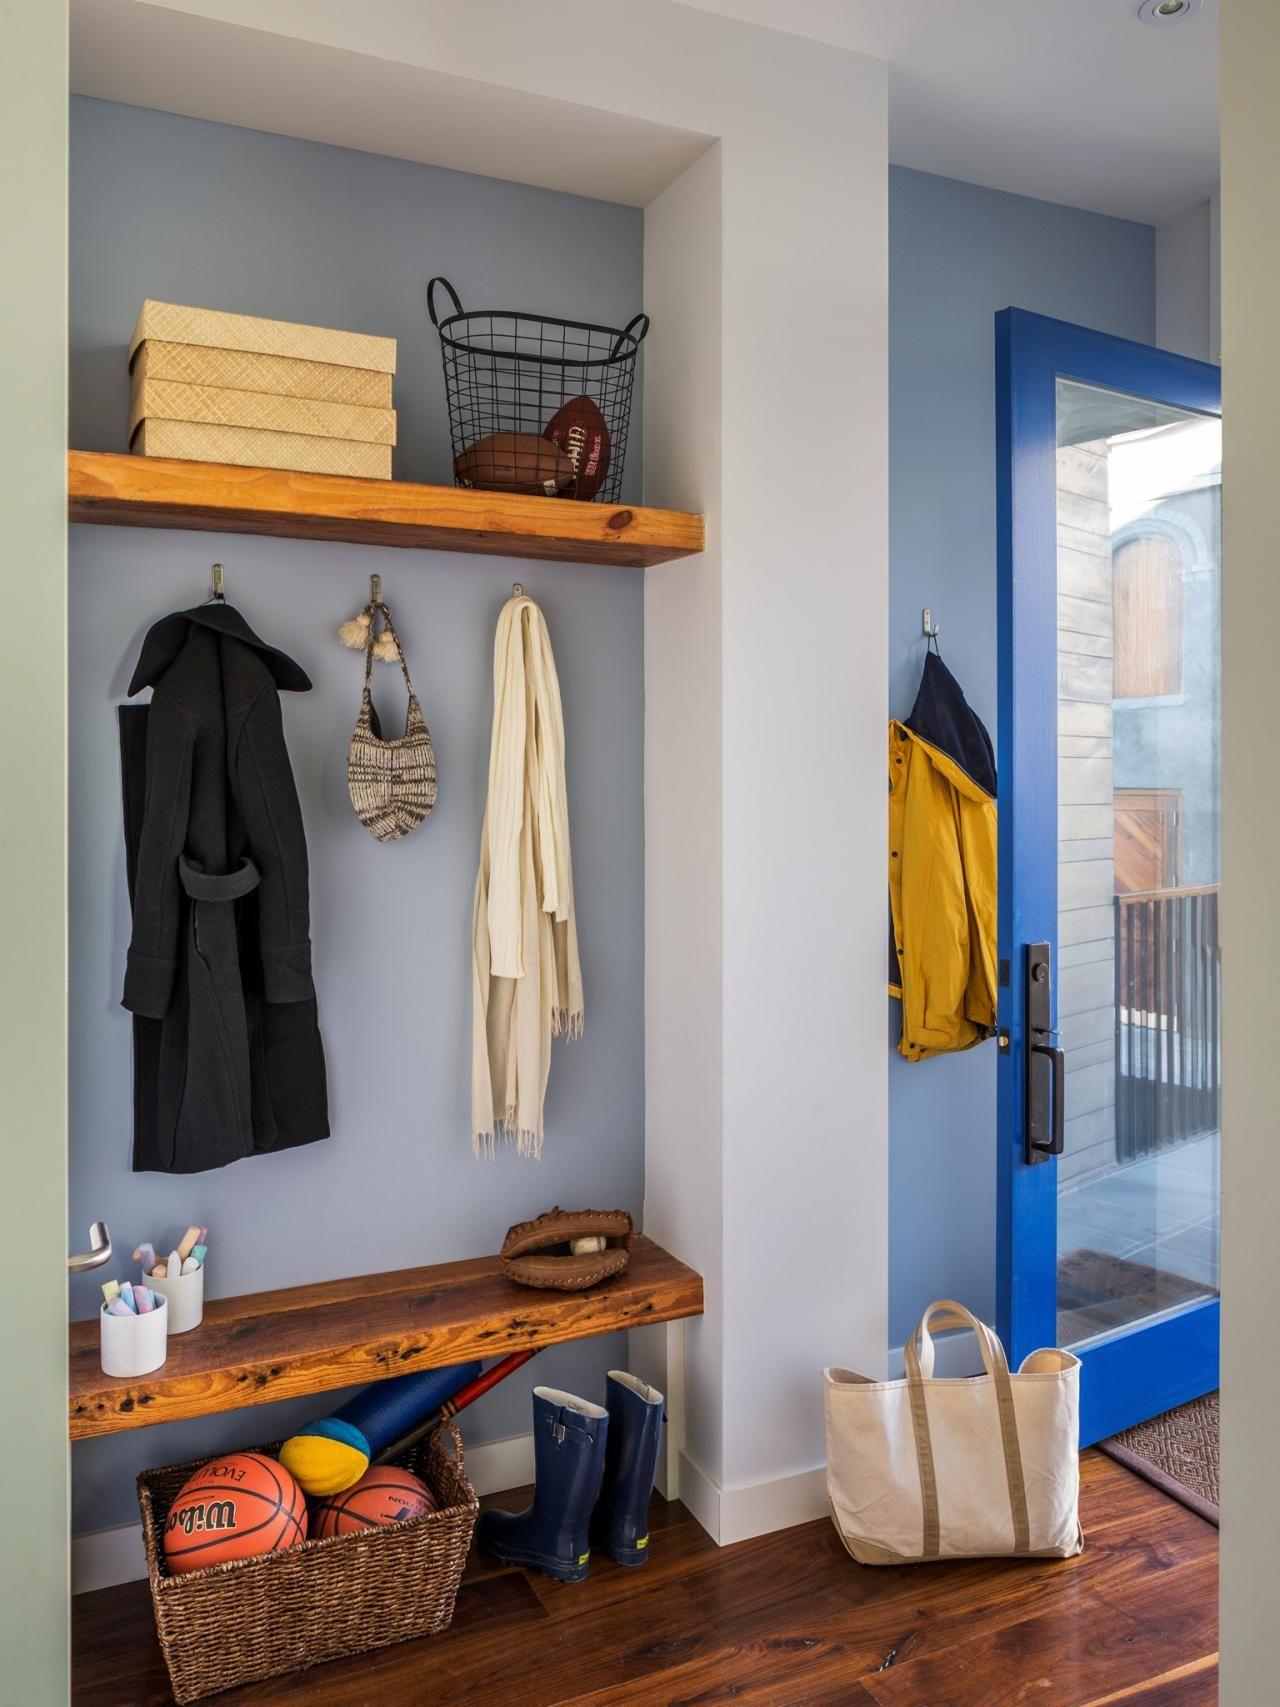 Tremendous 8 Pictures Of Stylish Functional Mudrooms Mudroom Interior Design Ideas Clesiryabchikinfo